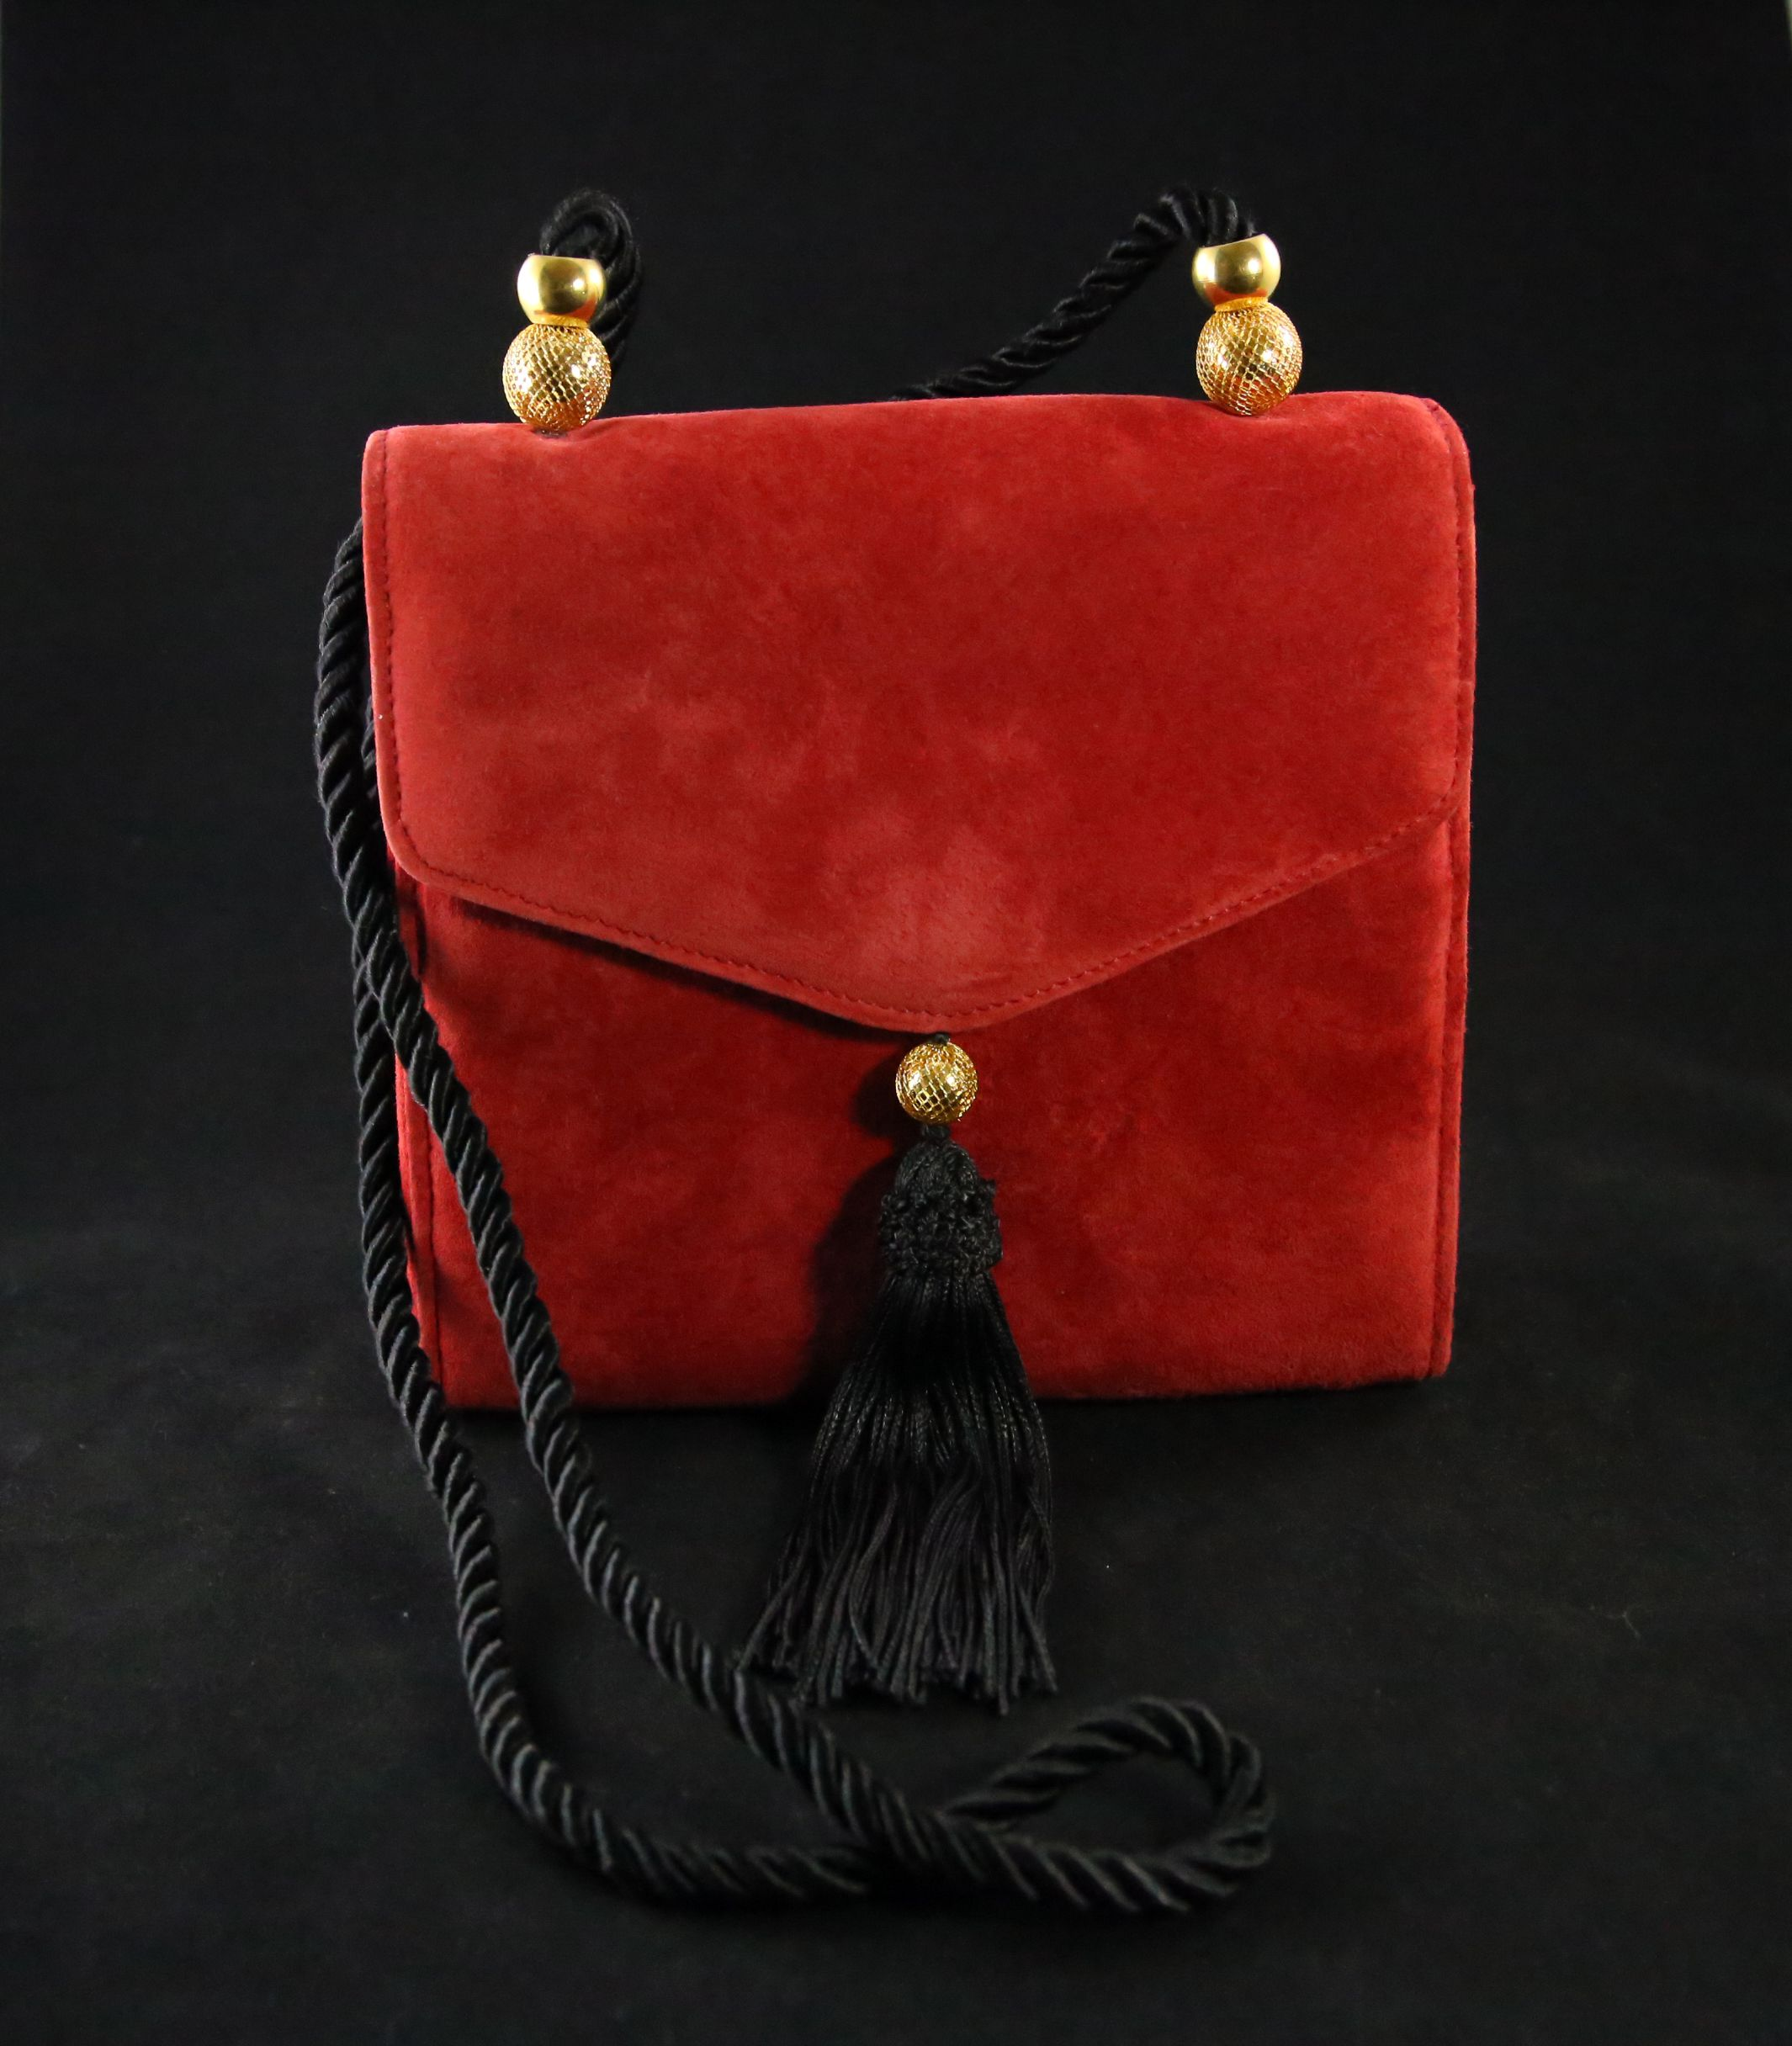 Vintage 80s Purse Cherry Red Suede with Asian 50s Inspired Gold Accent Tassel Shoulder Bag Purse